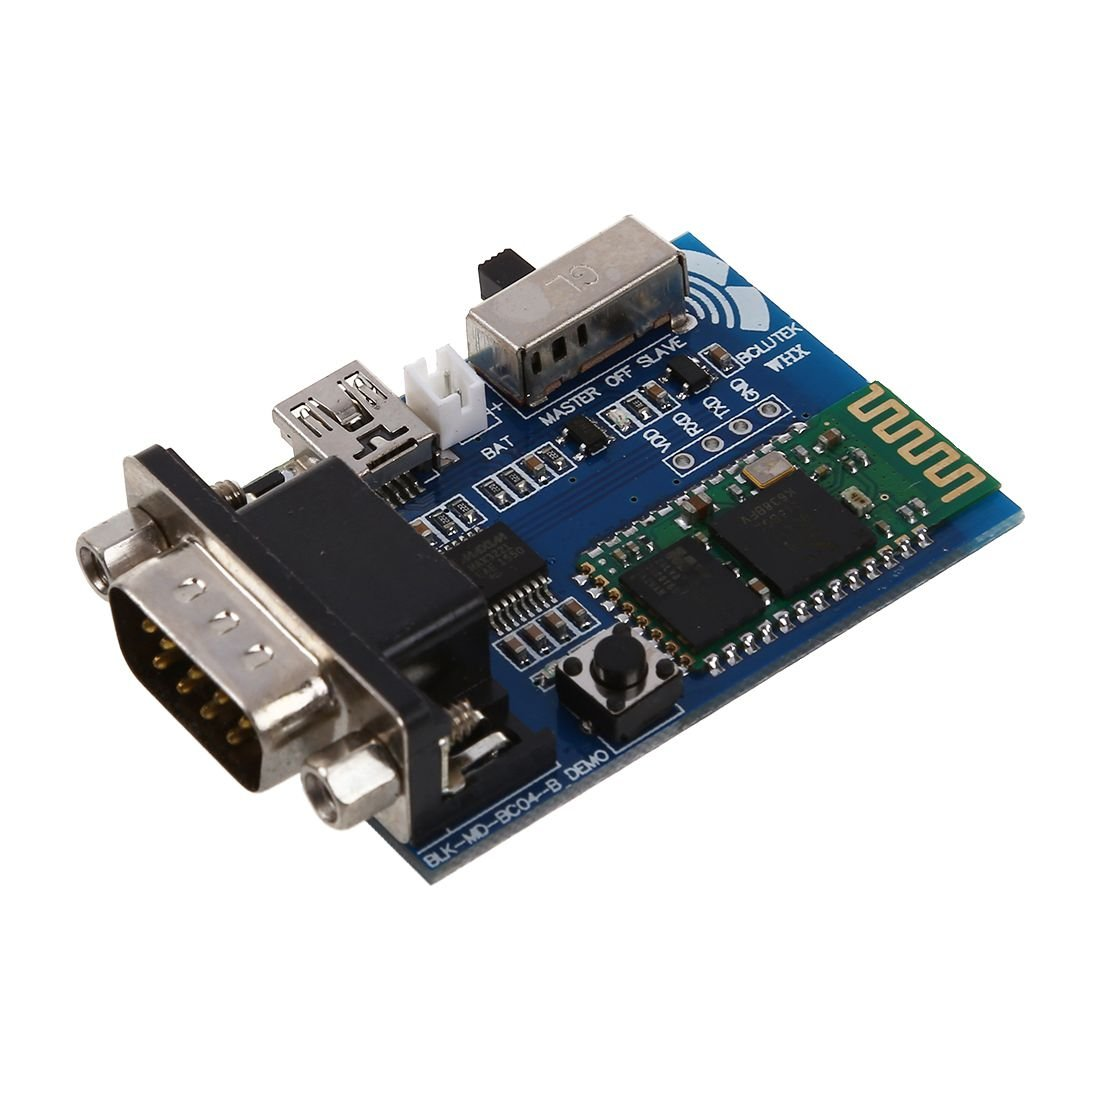 Slave modules - SODIAL(R) RS232 5V Bluetooth Serial Adapter Communication Master-Slave modules Mini USB 044490